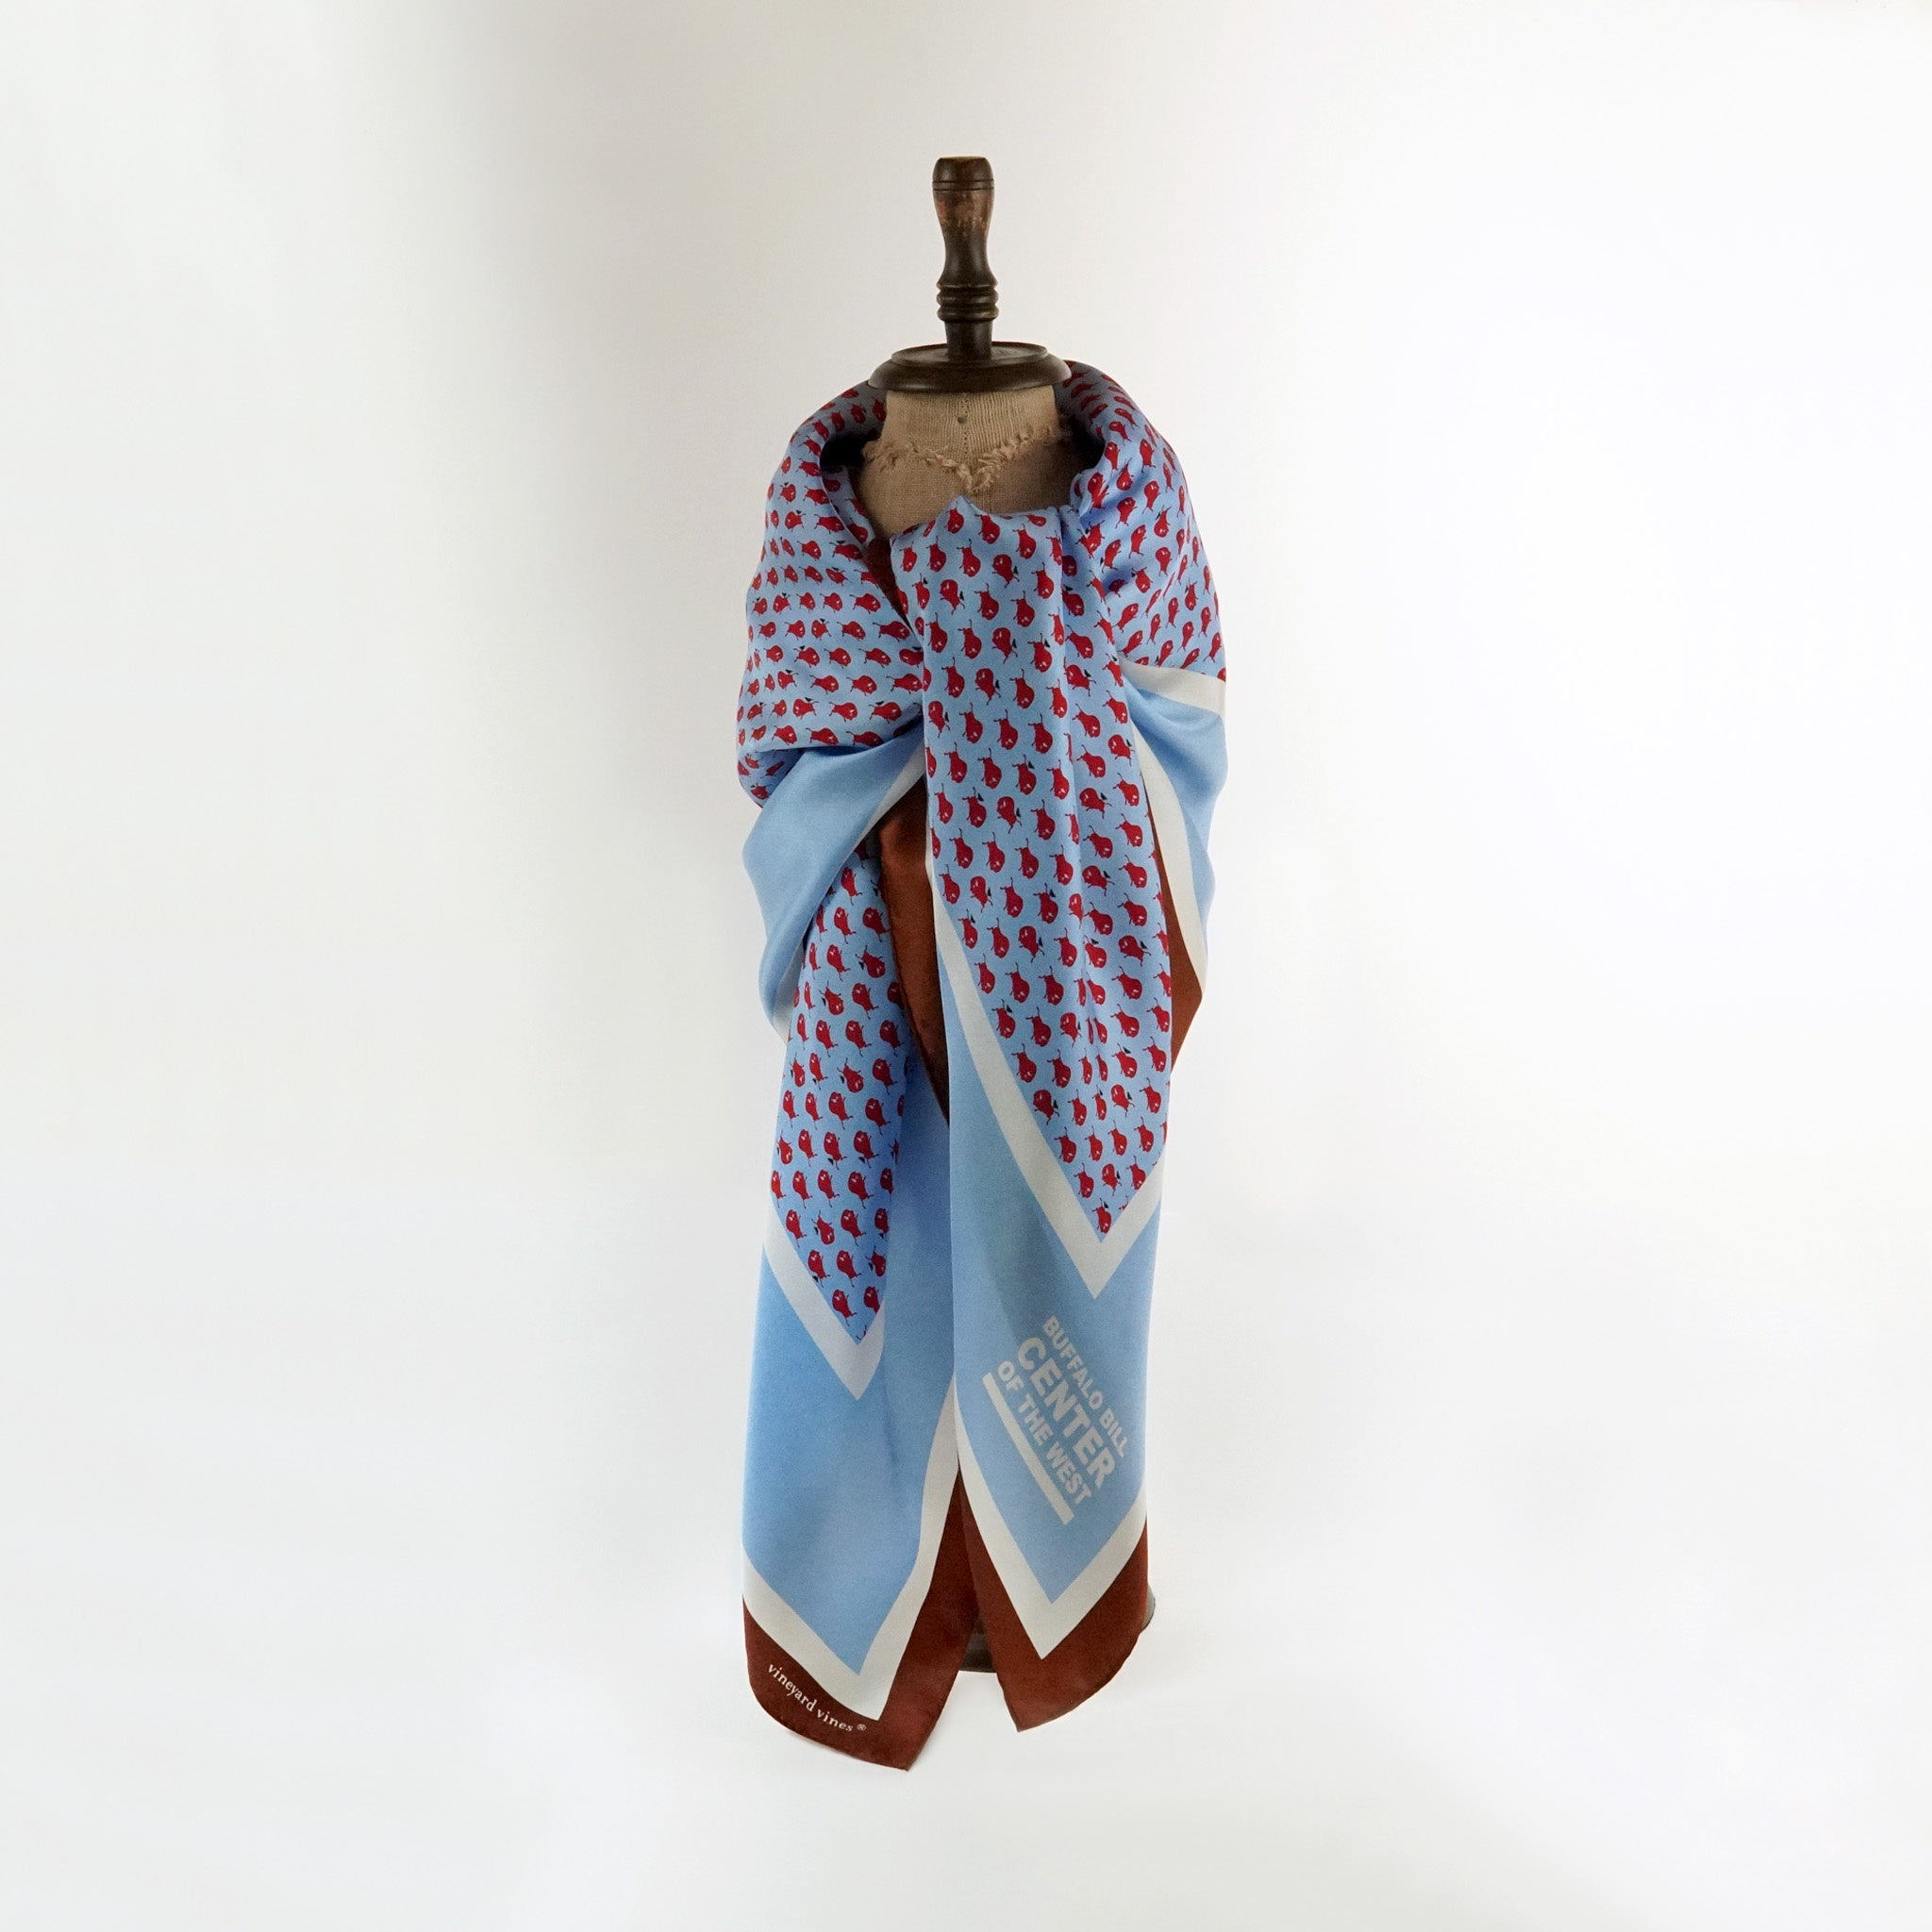 Light Blue Center of the West scarf